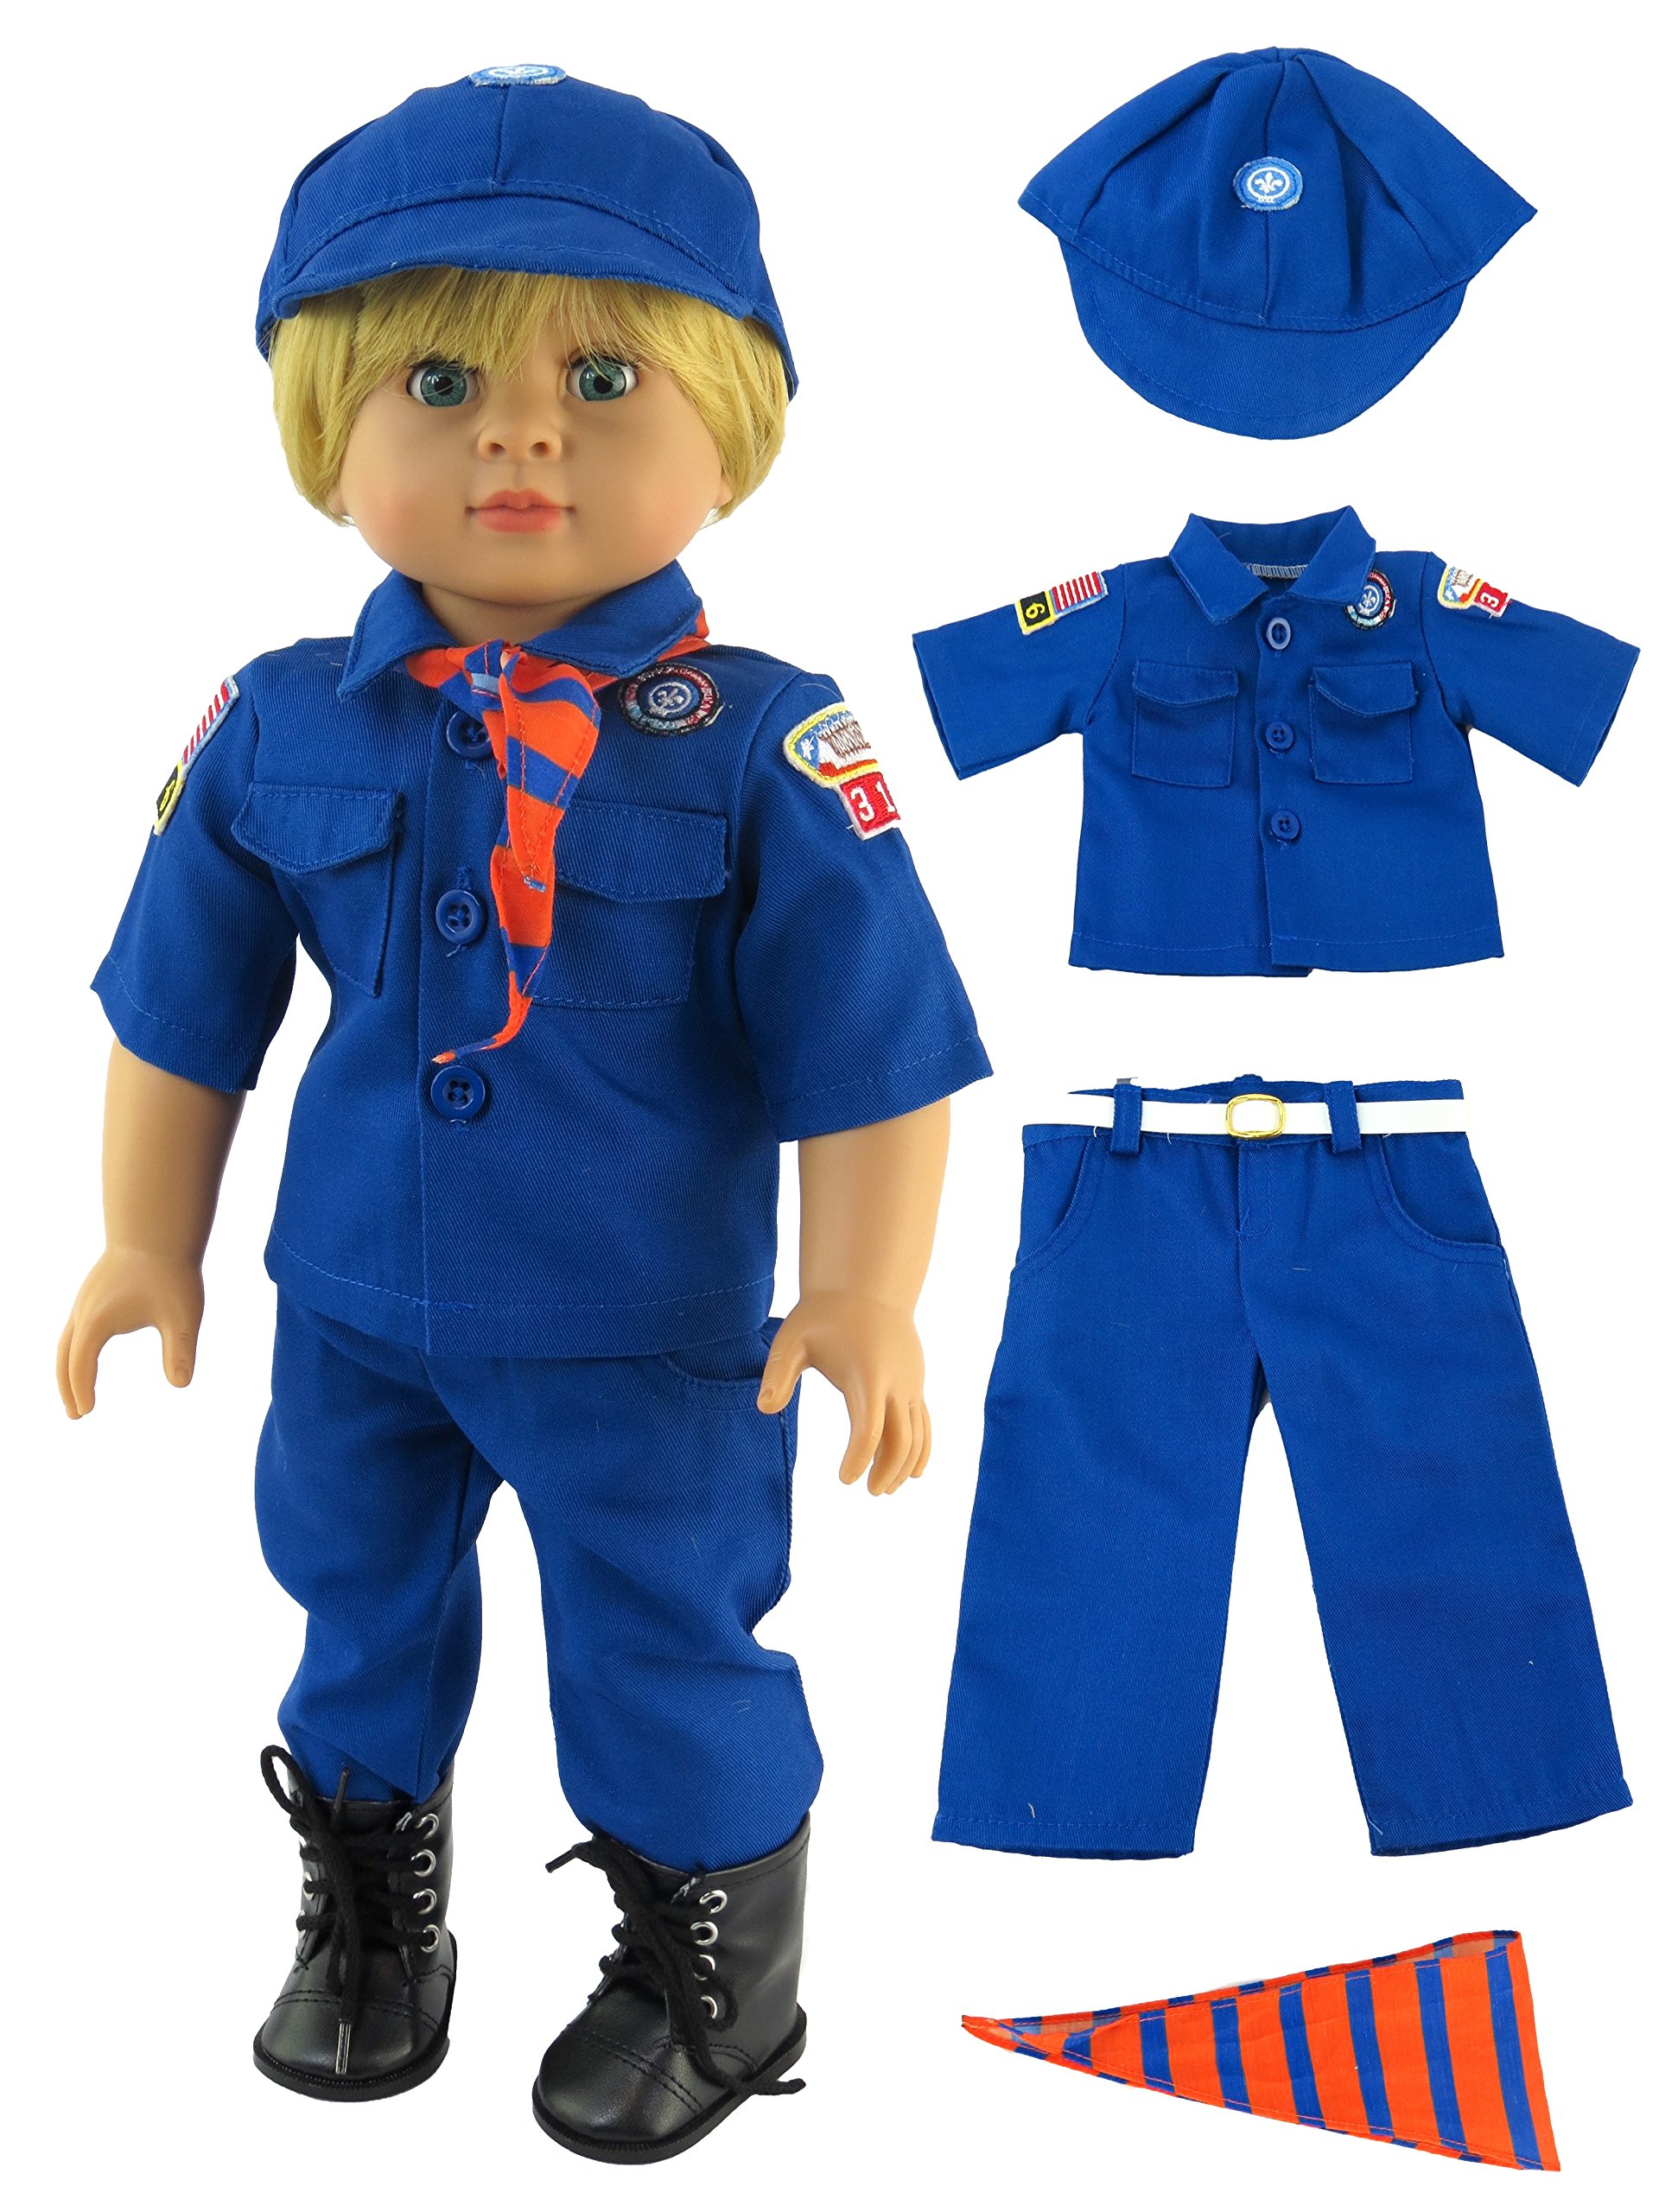 Cub Scout Boy Scout Outfit for 18 Inch Dolls | Fits 18'' Doll | Charming And Stylish Boy Outfit | American Girl Dolls, Madame Alexander, Our Generation, etc. | 18 Inch Doll Clothes by American Fashion World